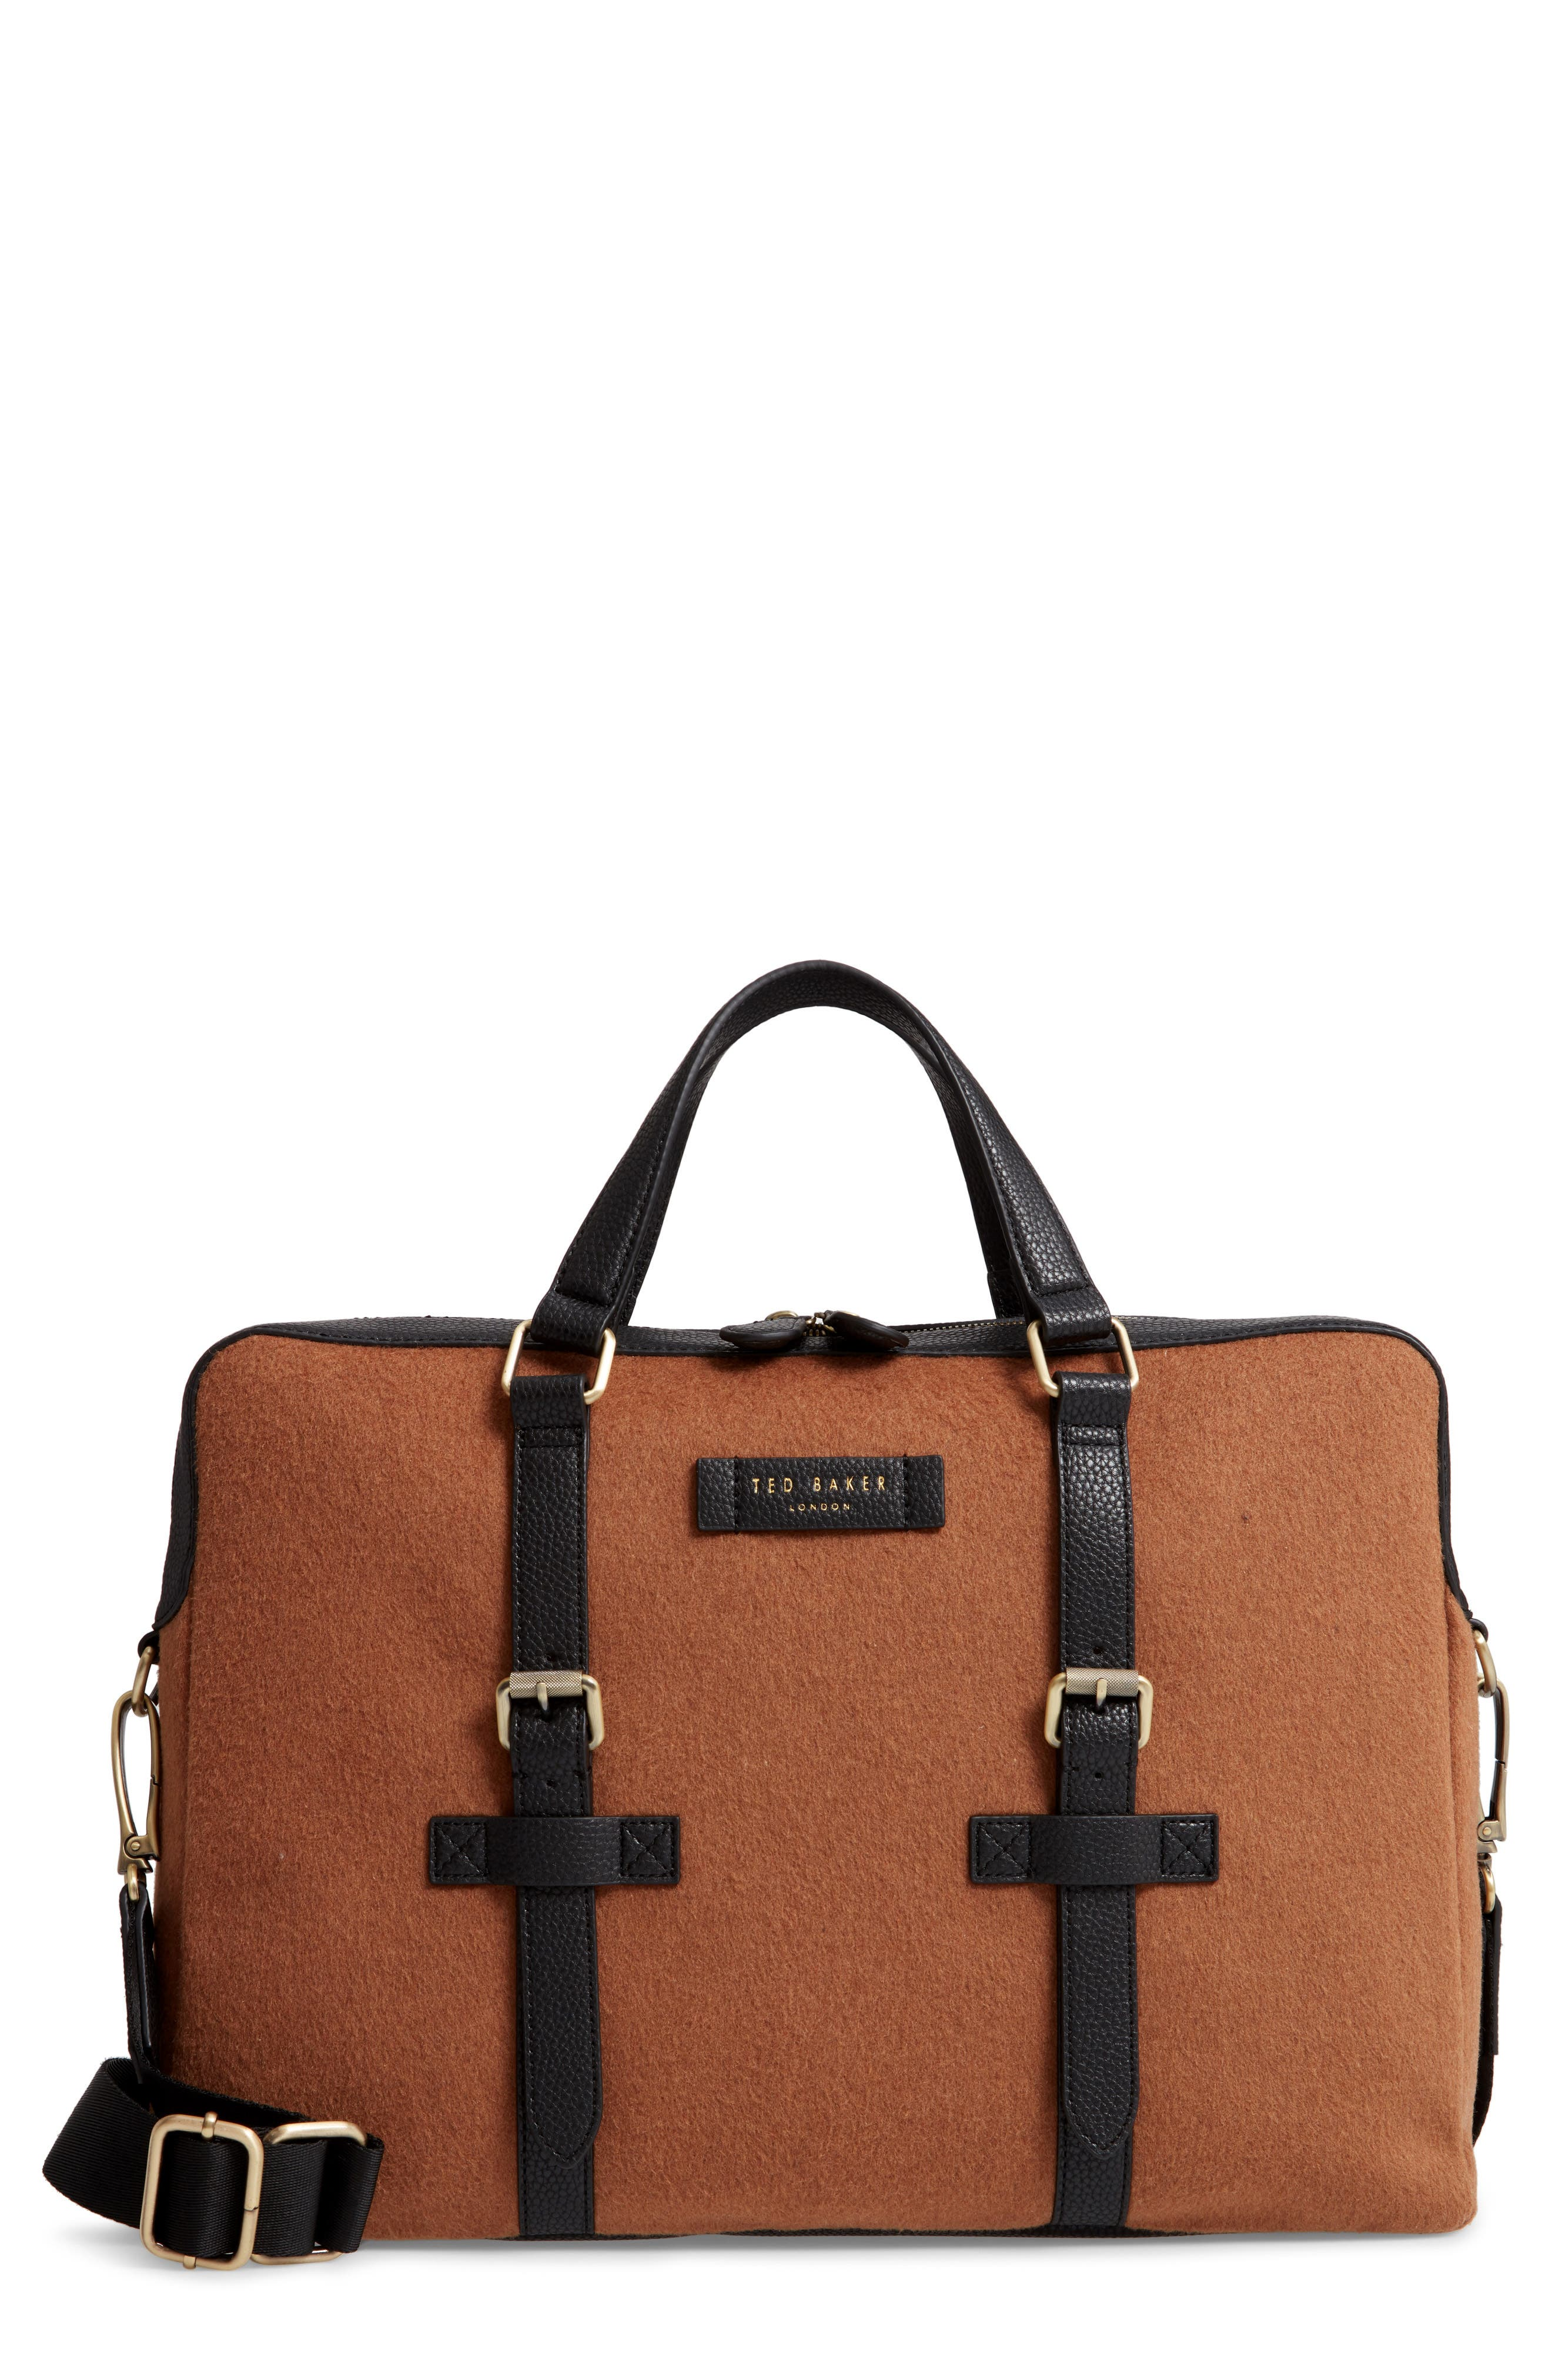 Cabble Briefcase - Brown in Camel